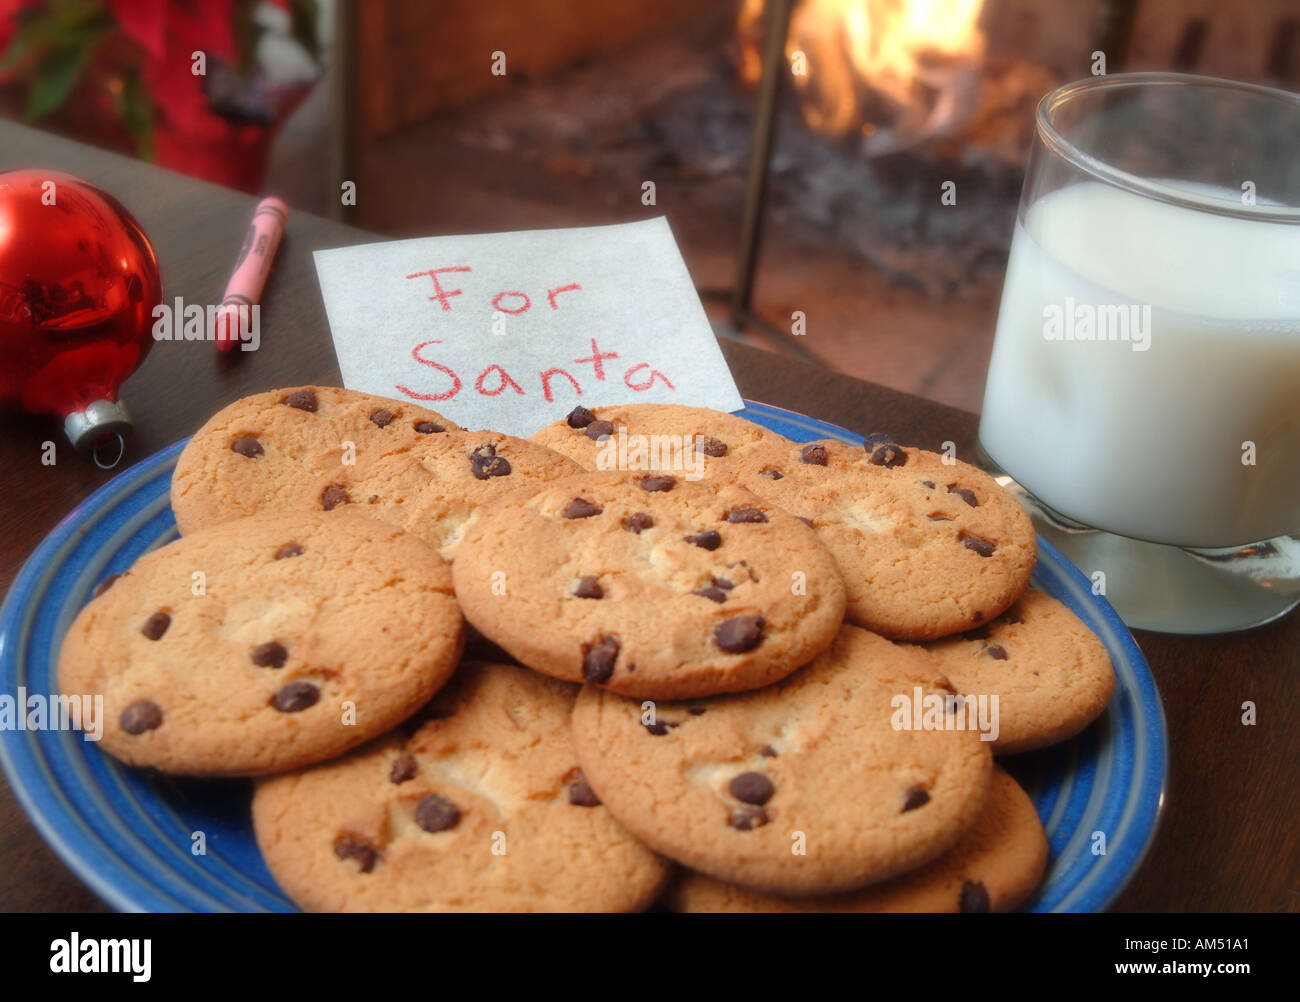 A Plate Of Chocolate Chip Cookie Left For Santa Claus Along With A